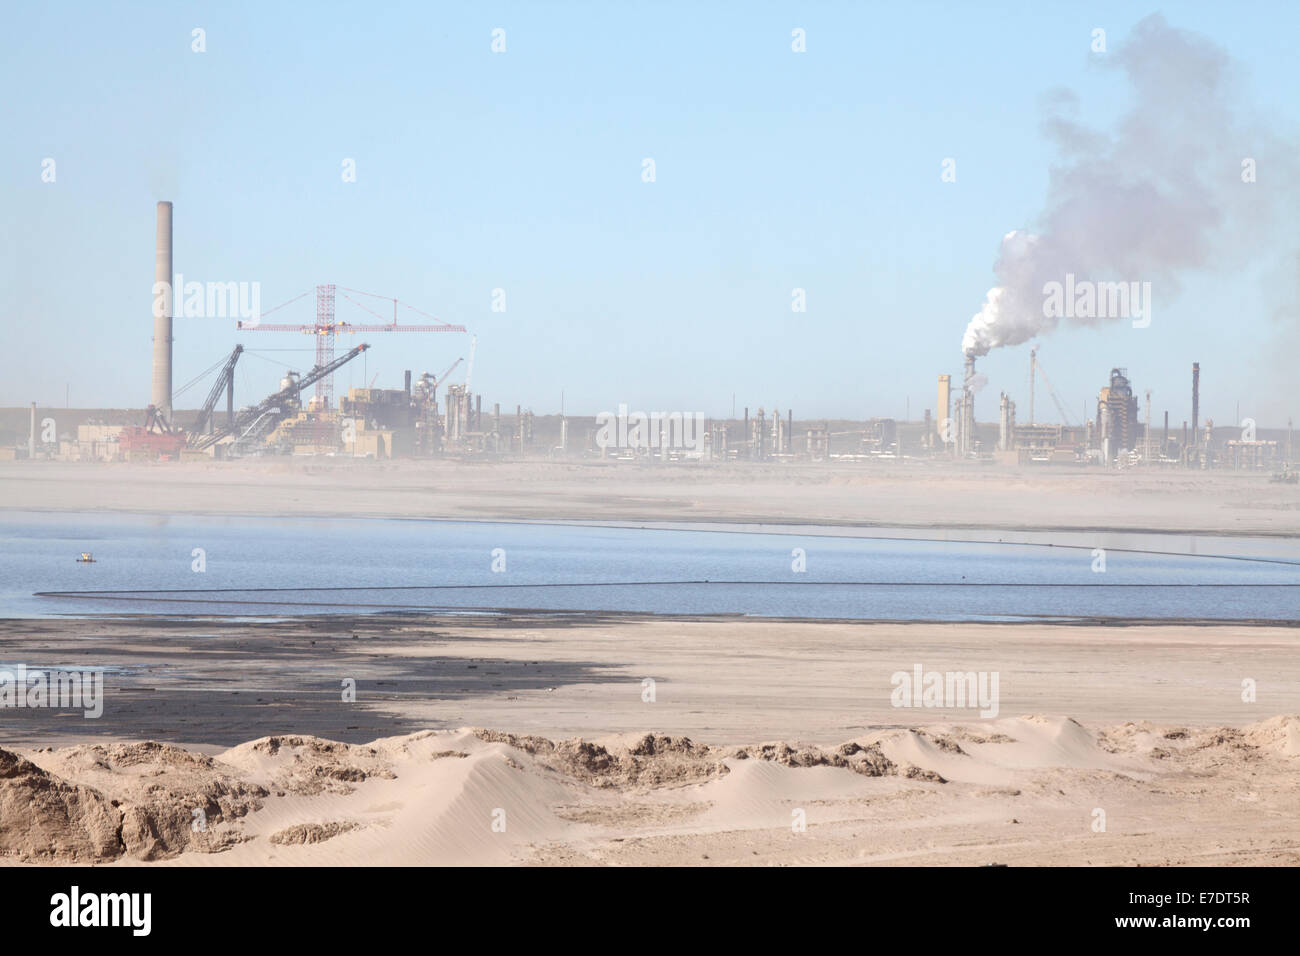 Industrial landscape with smoke stacks and mining dragline at Fort McMurray, Alberta, Canada Stock Photo